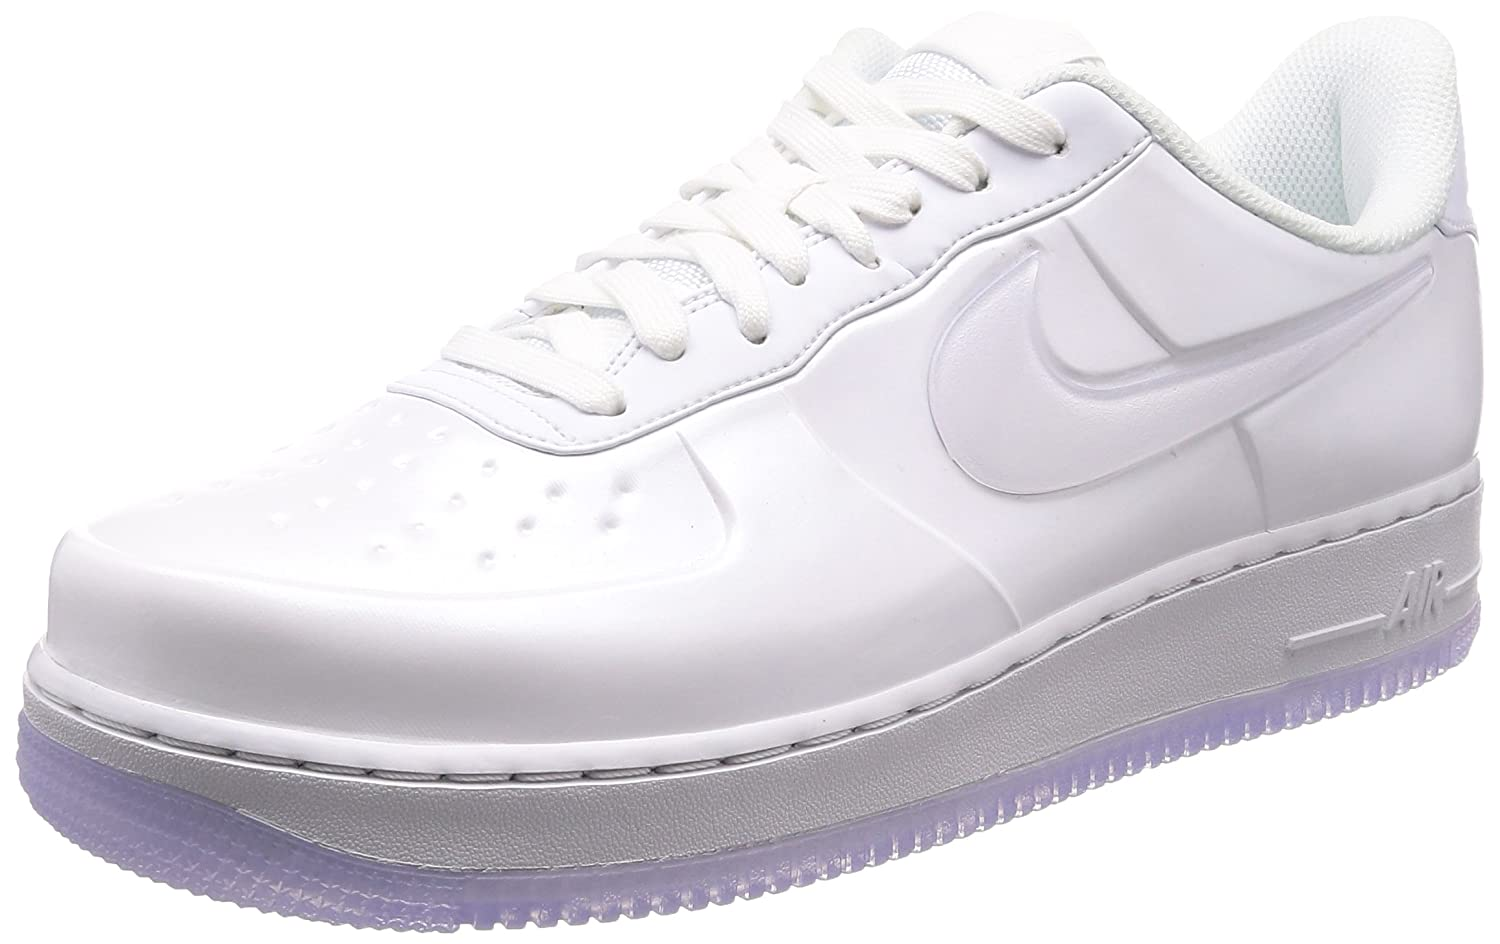 reputable site 001ca 5d62d Nike Men's AIR Force 1 Foamposite PRO Cupsole Shoe Triple White